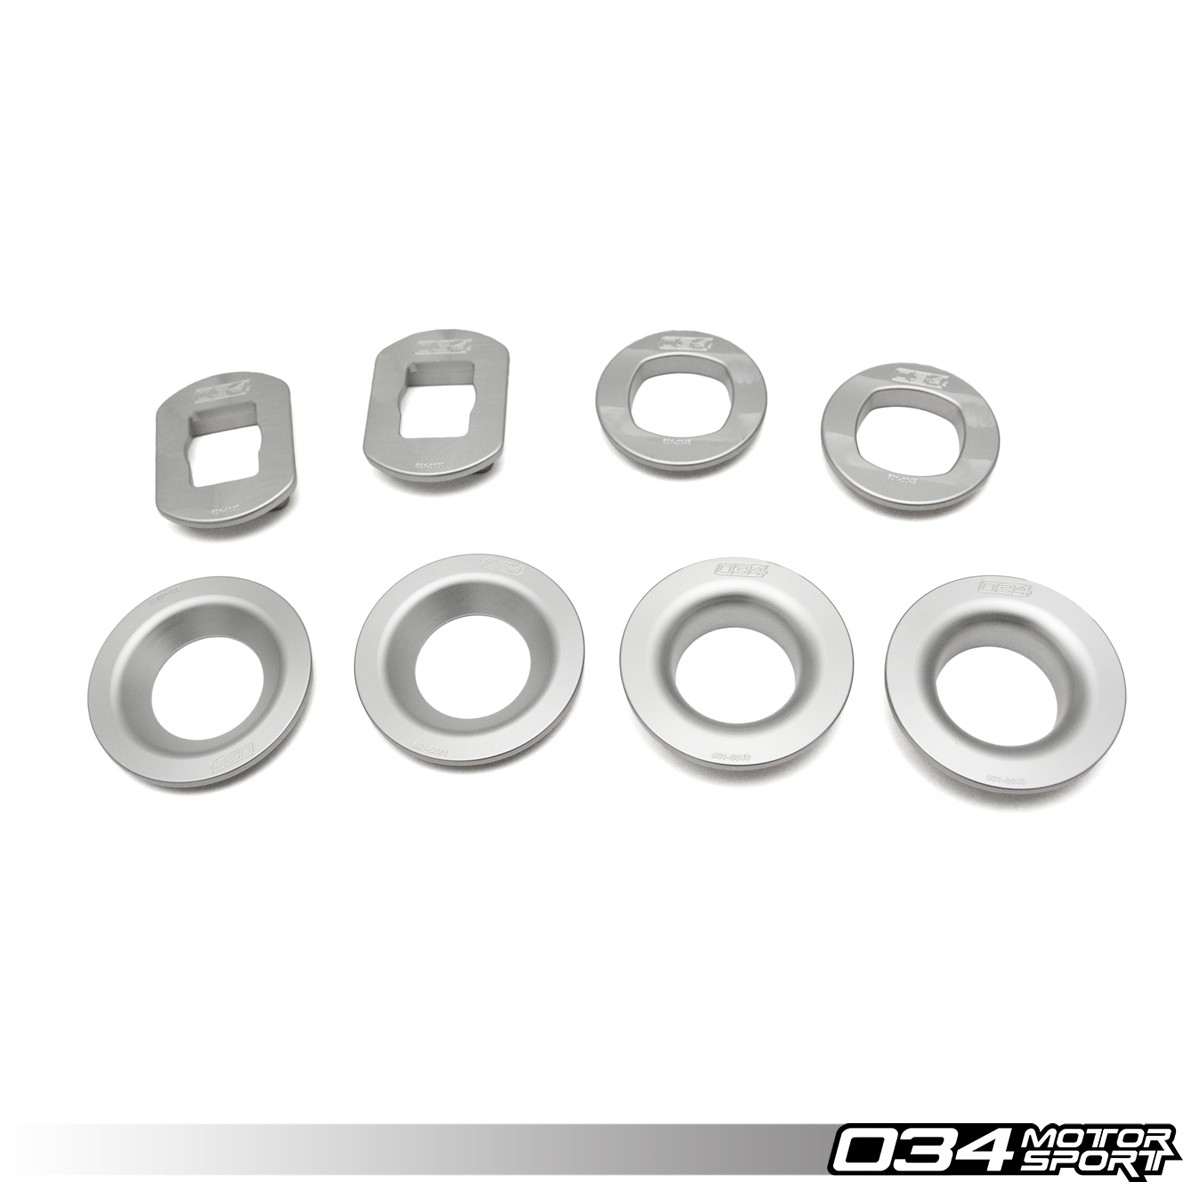 Billet Aluminum Rear Subframe Mount Insert Kit, E9X BMW | 034-601-0047